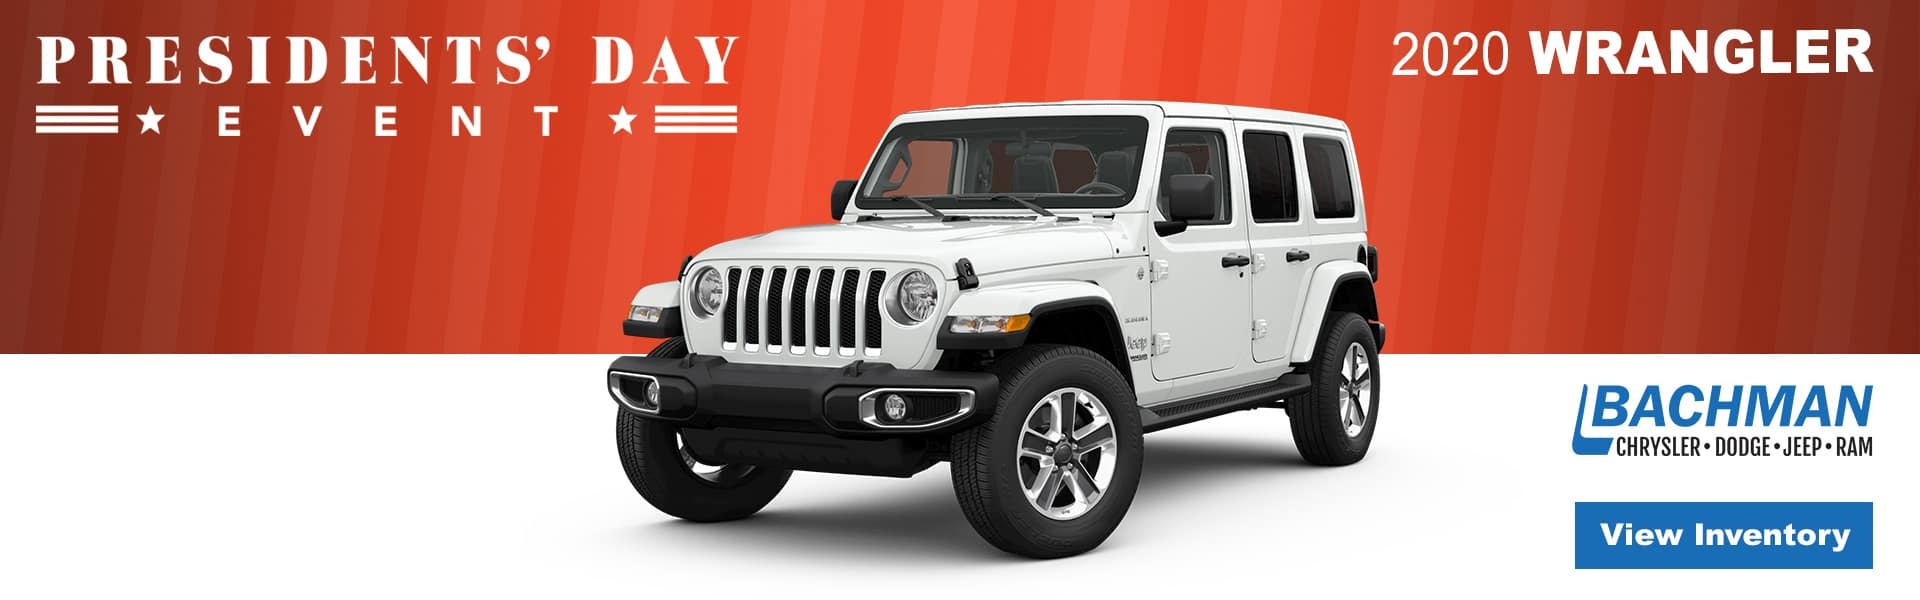 Presidents Day Sales Event Wrangler